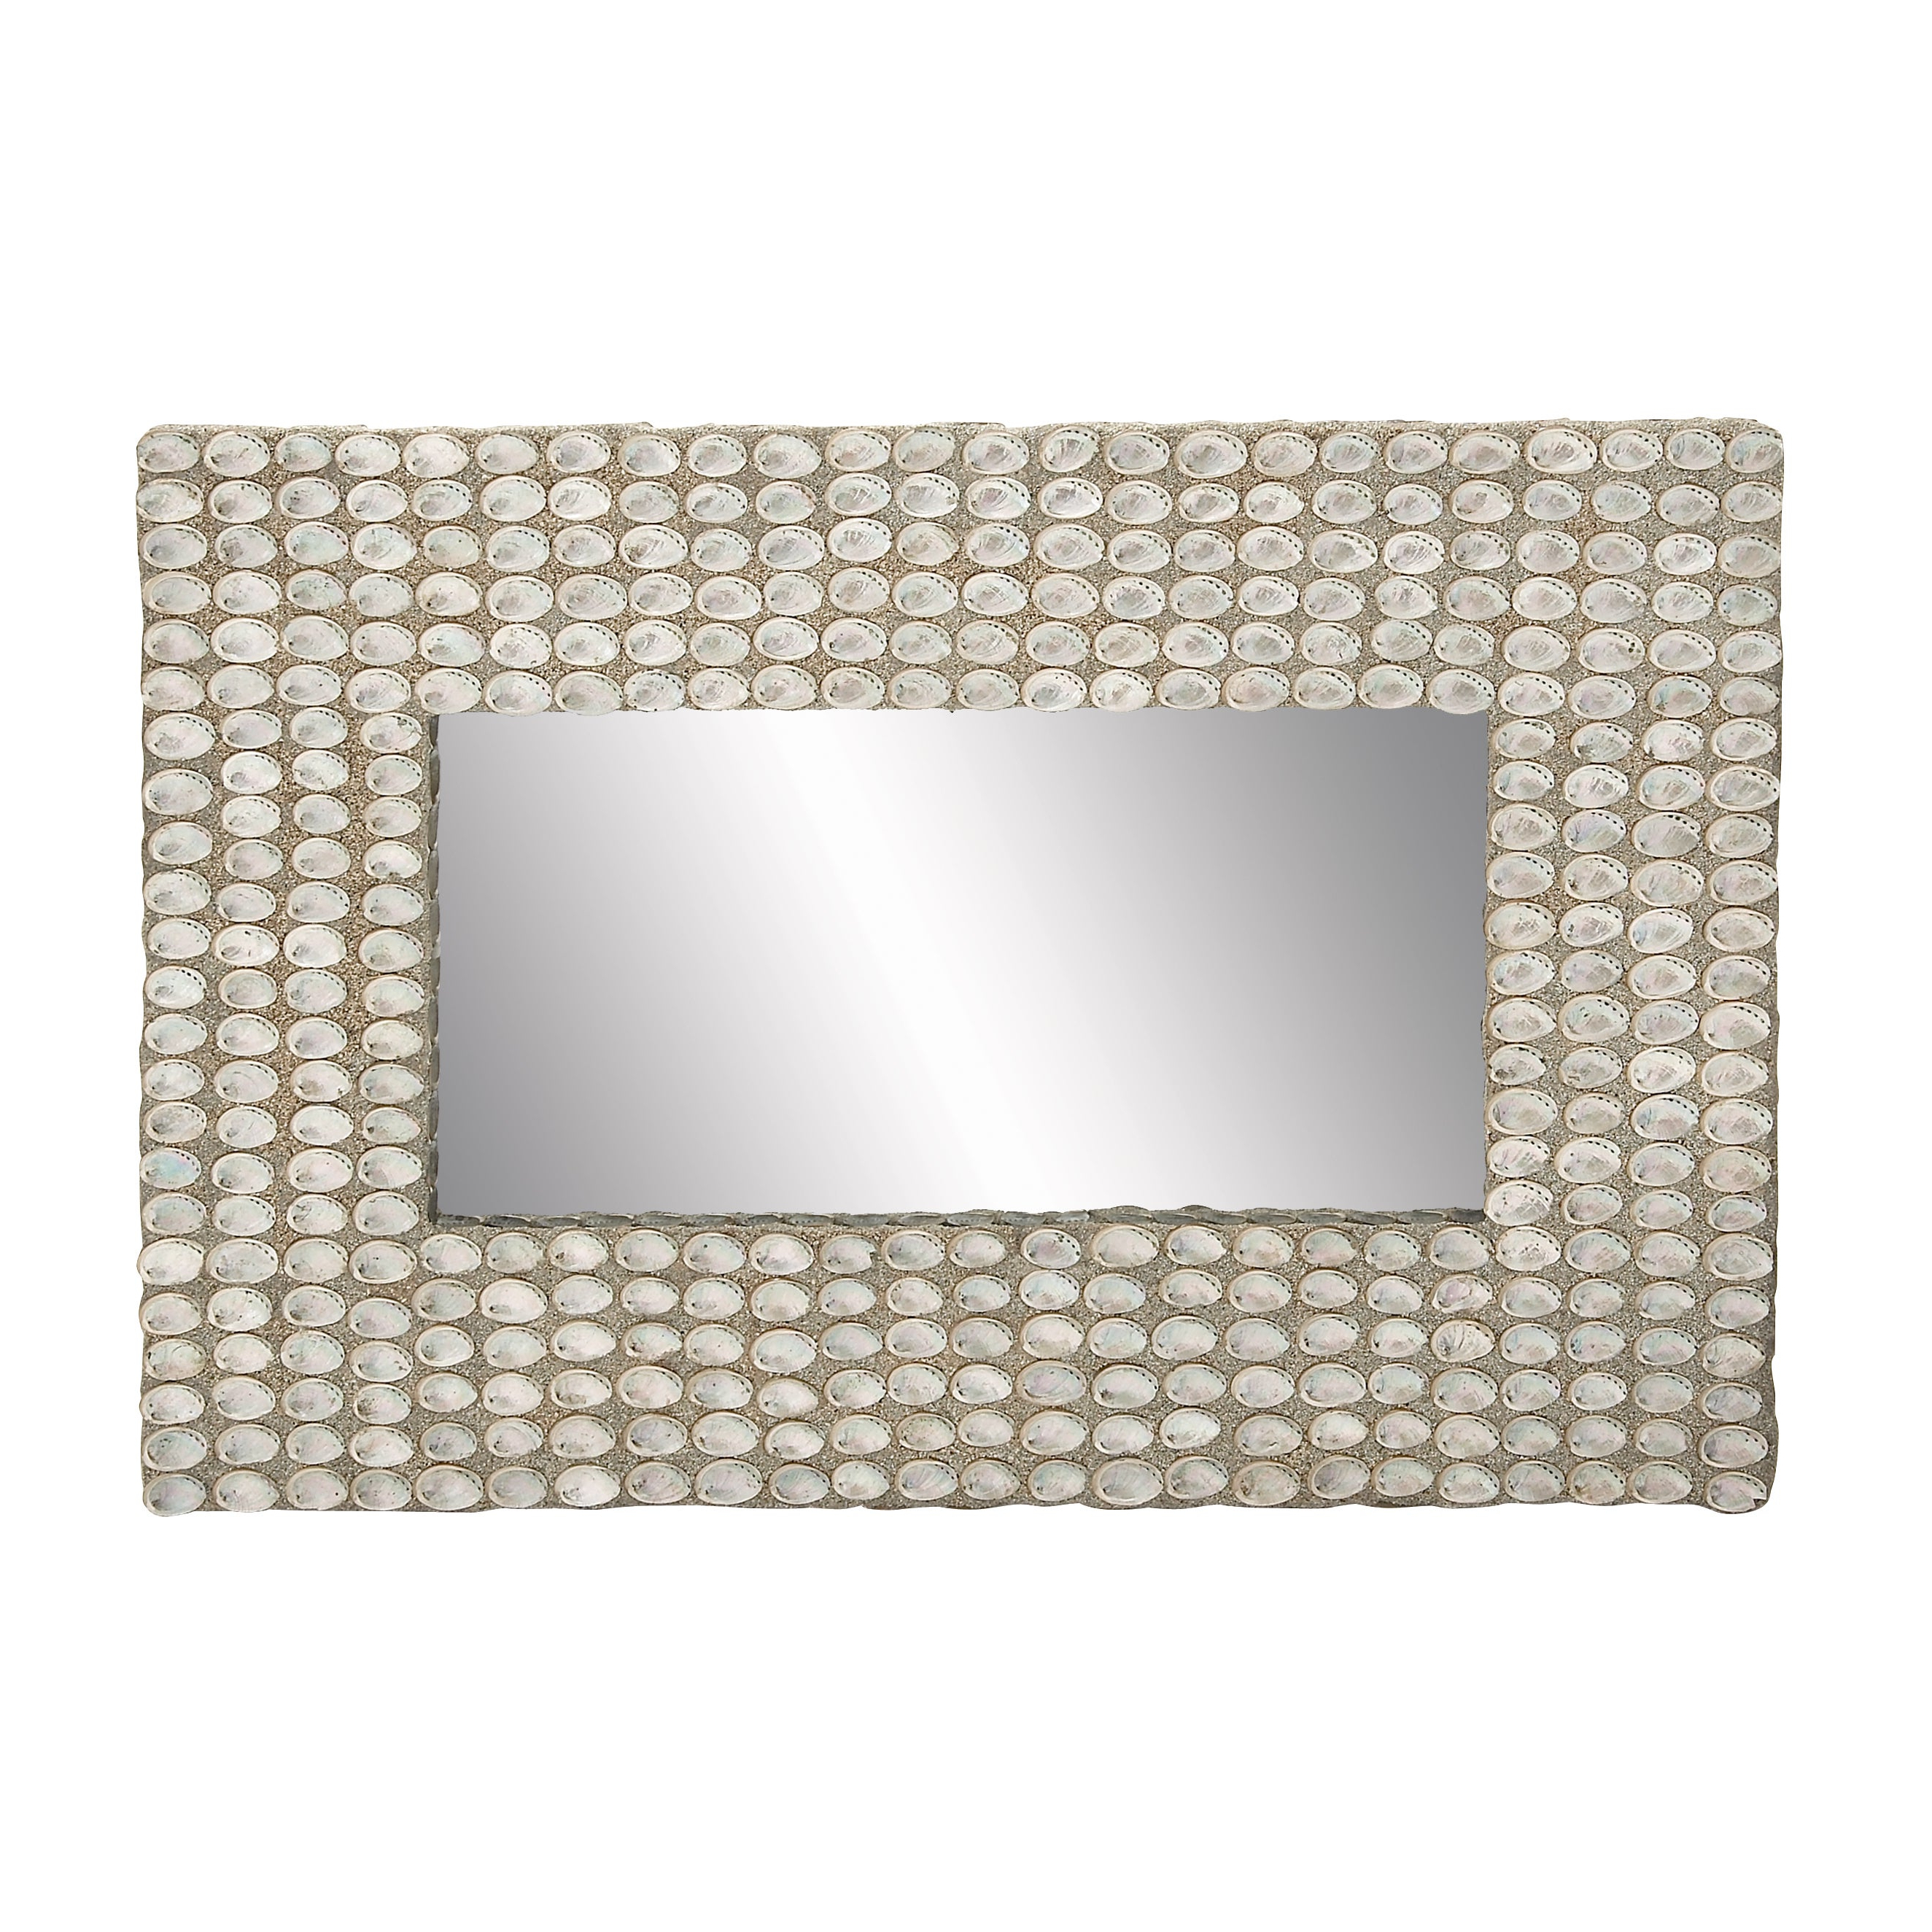 Most Recent Seashell Wall Mirror With Seashell Wall Mirrors (View 8 of 20)